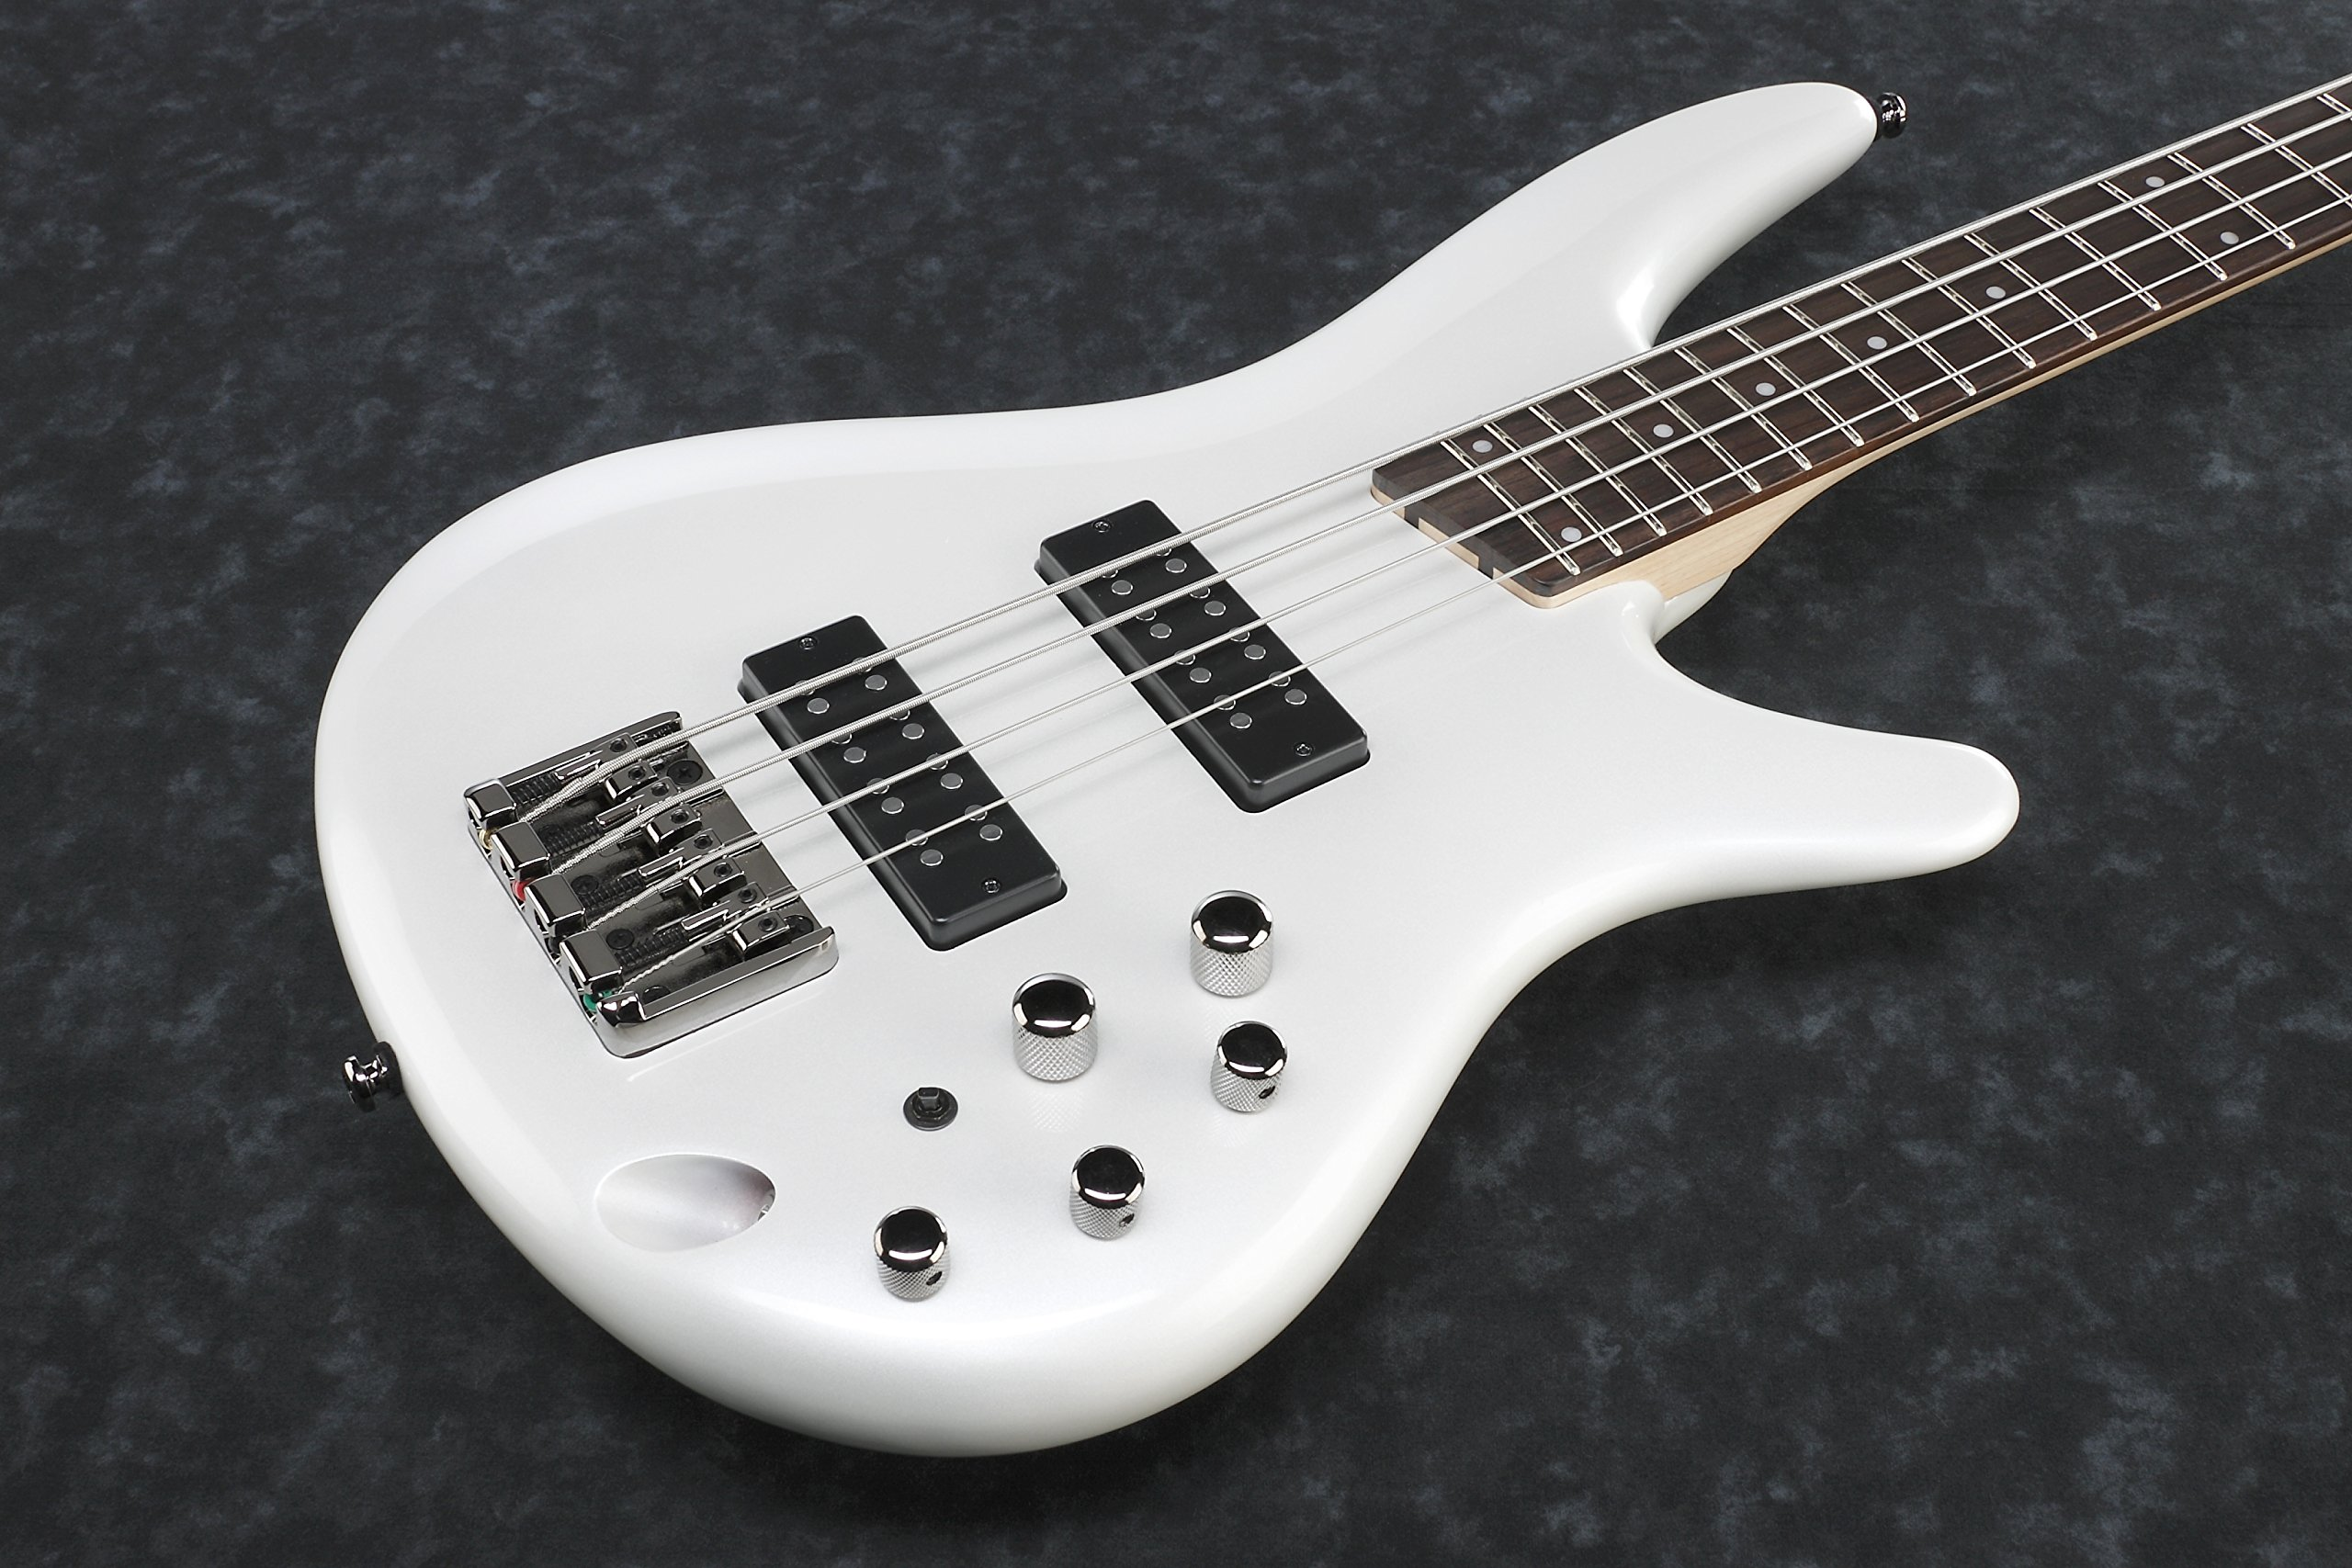 Ibanez SR300E Electric guitar 4cuerdas Blanco: Amazon.es: Electrónica